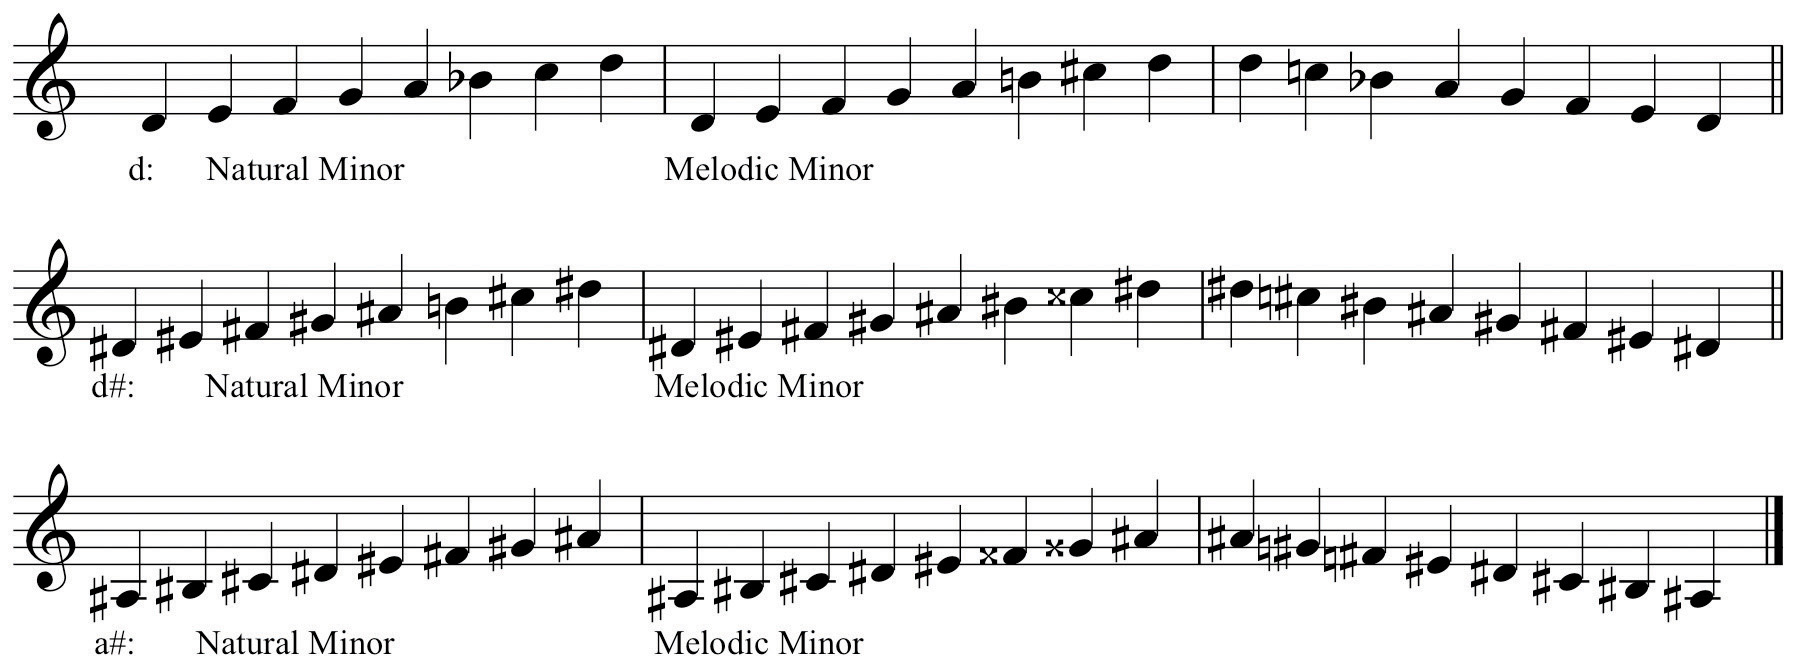 Melodic Minor Scales Trumpet of Melodic Minor Scales